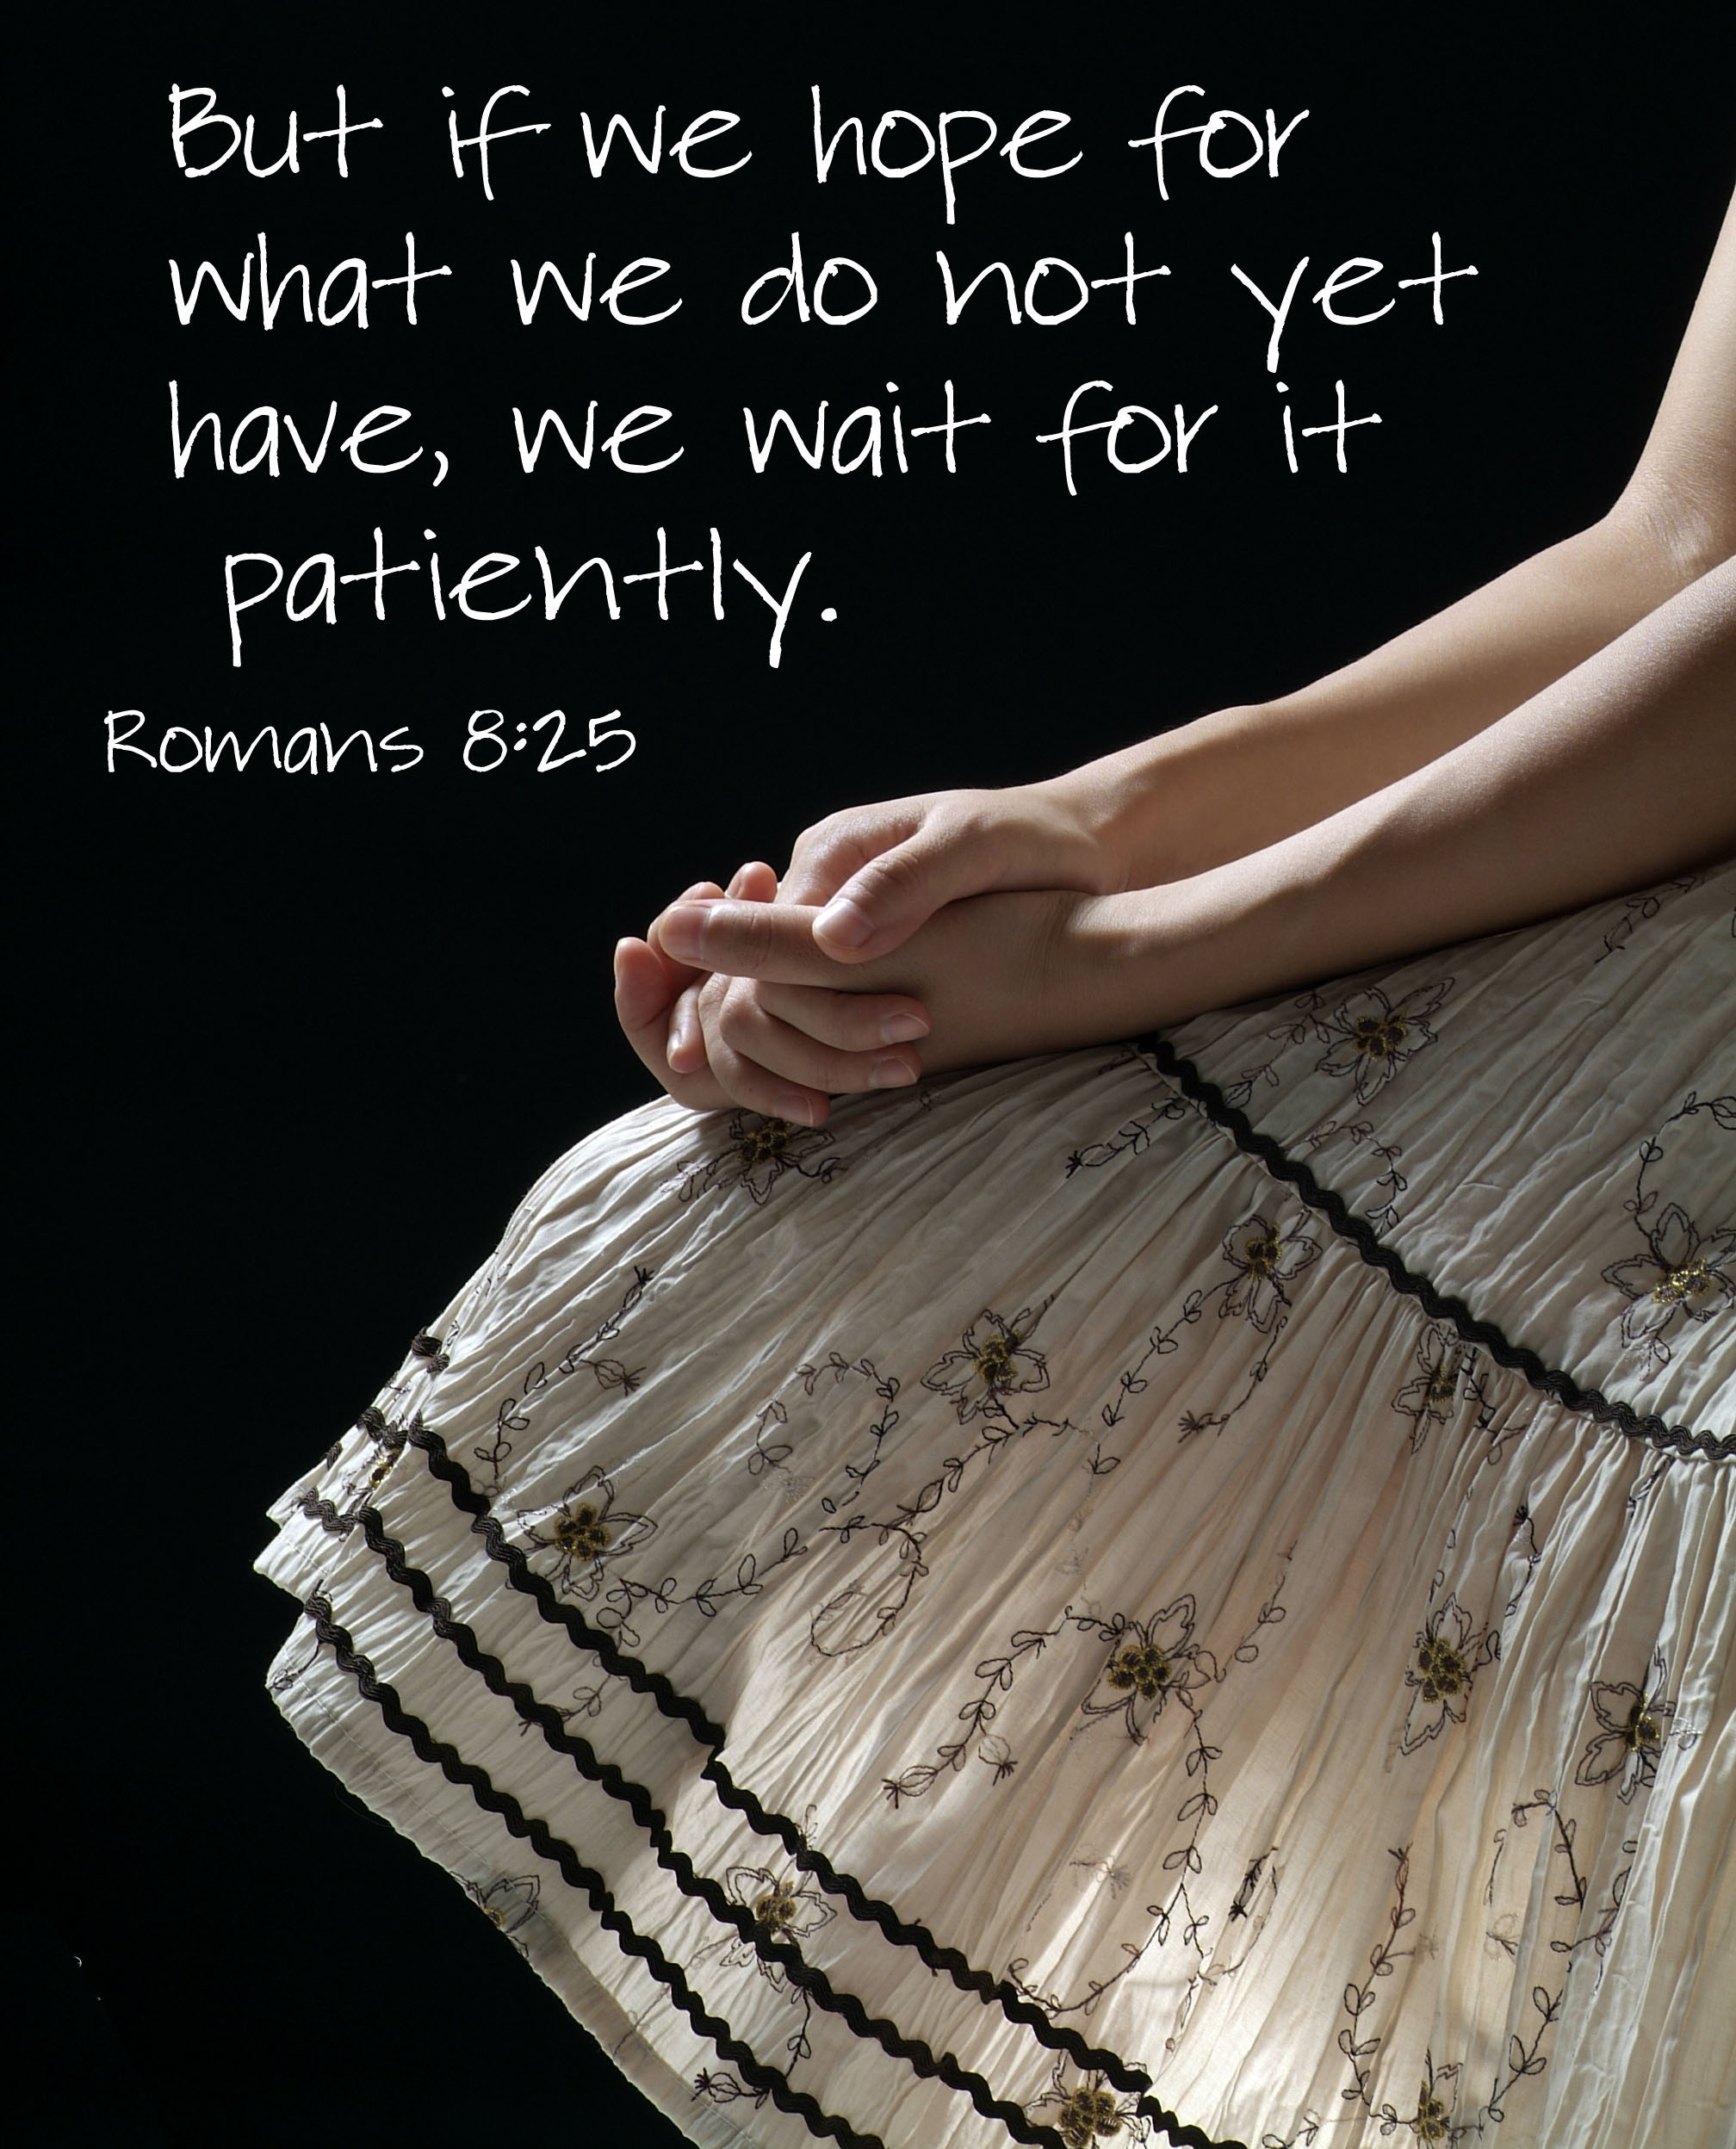 Bible Quotes About Patience. QuotesGram